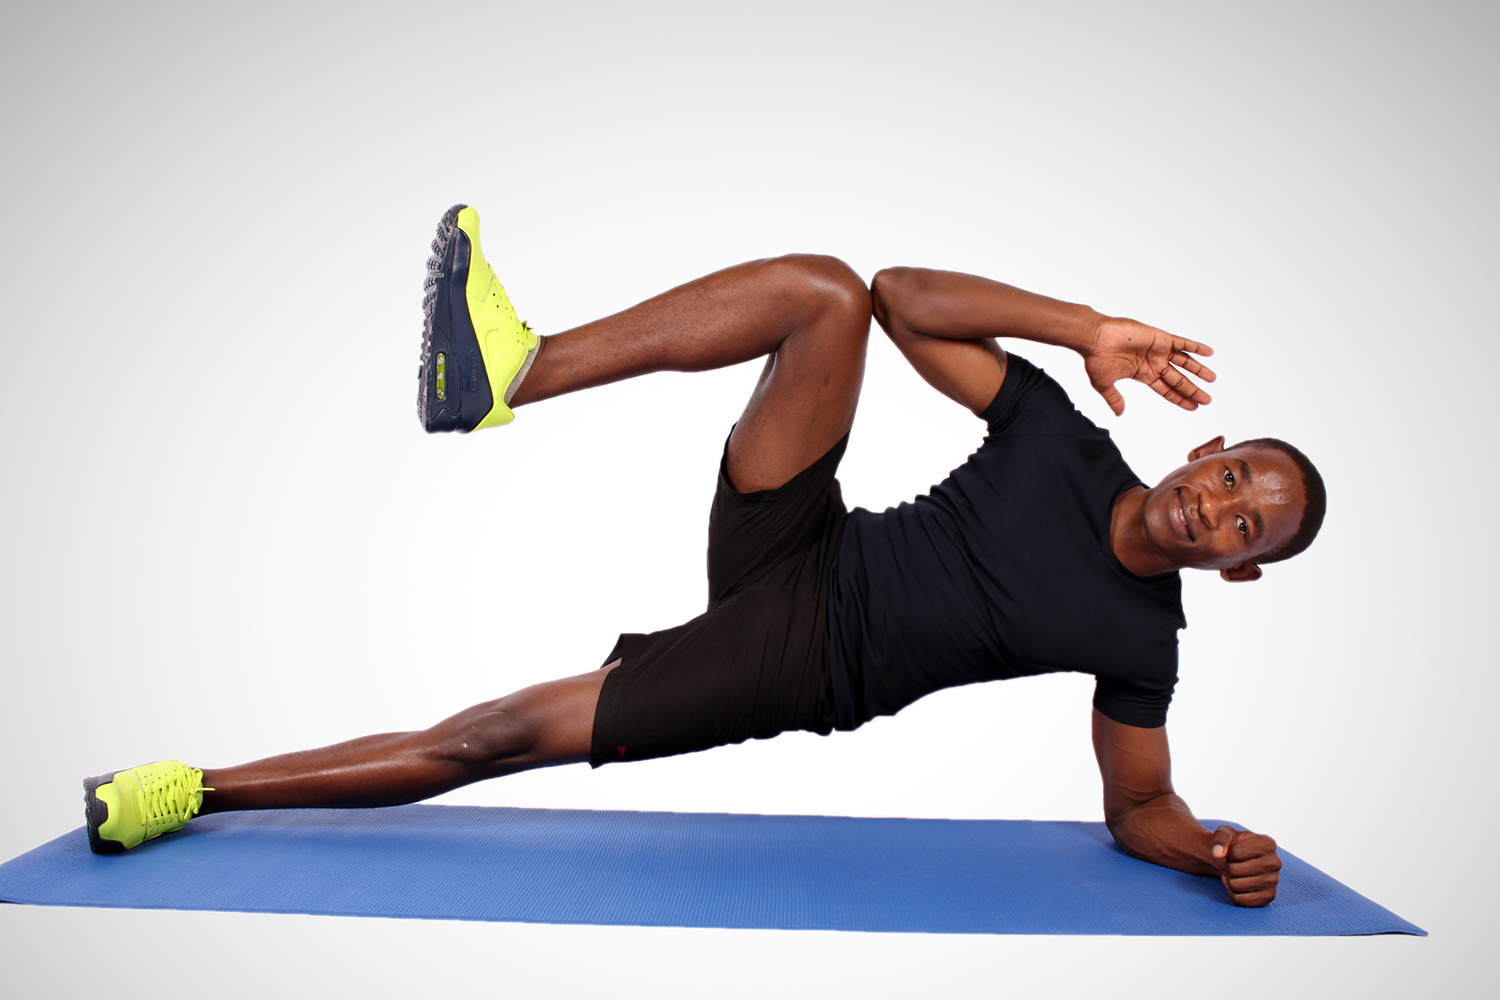 Fit man doing side plank with knee crunch on yoga mat